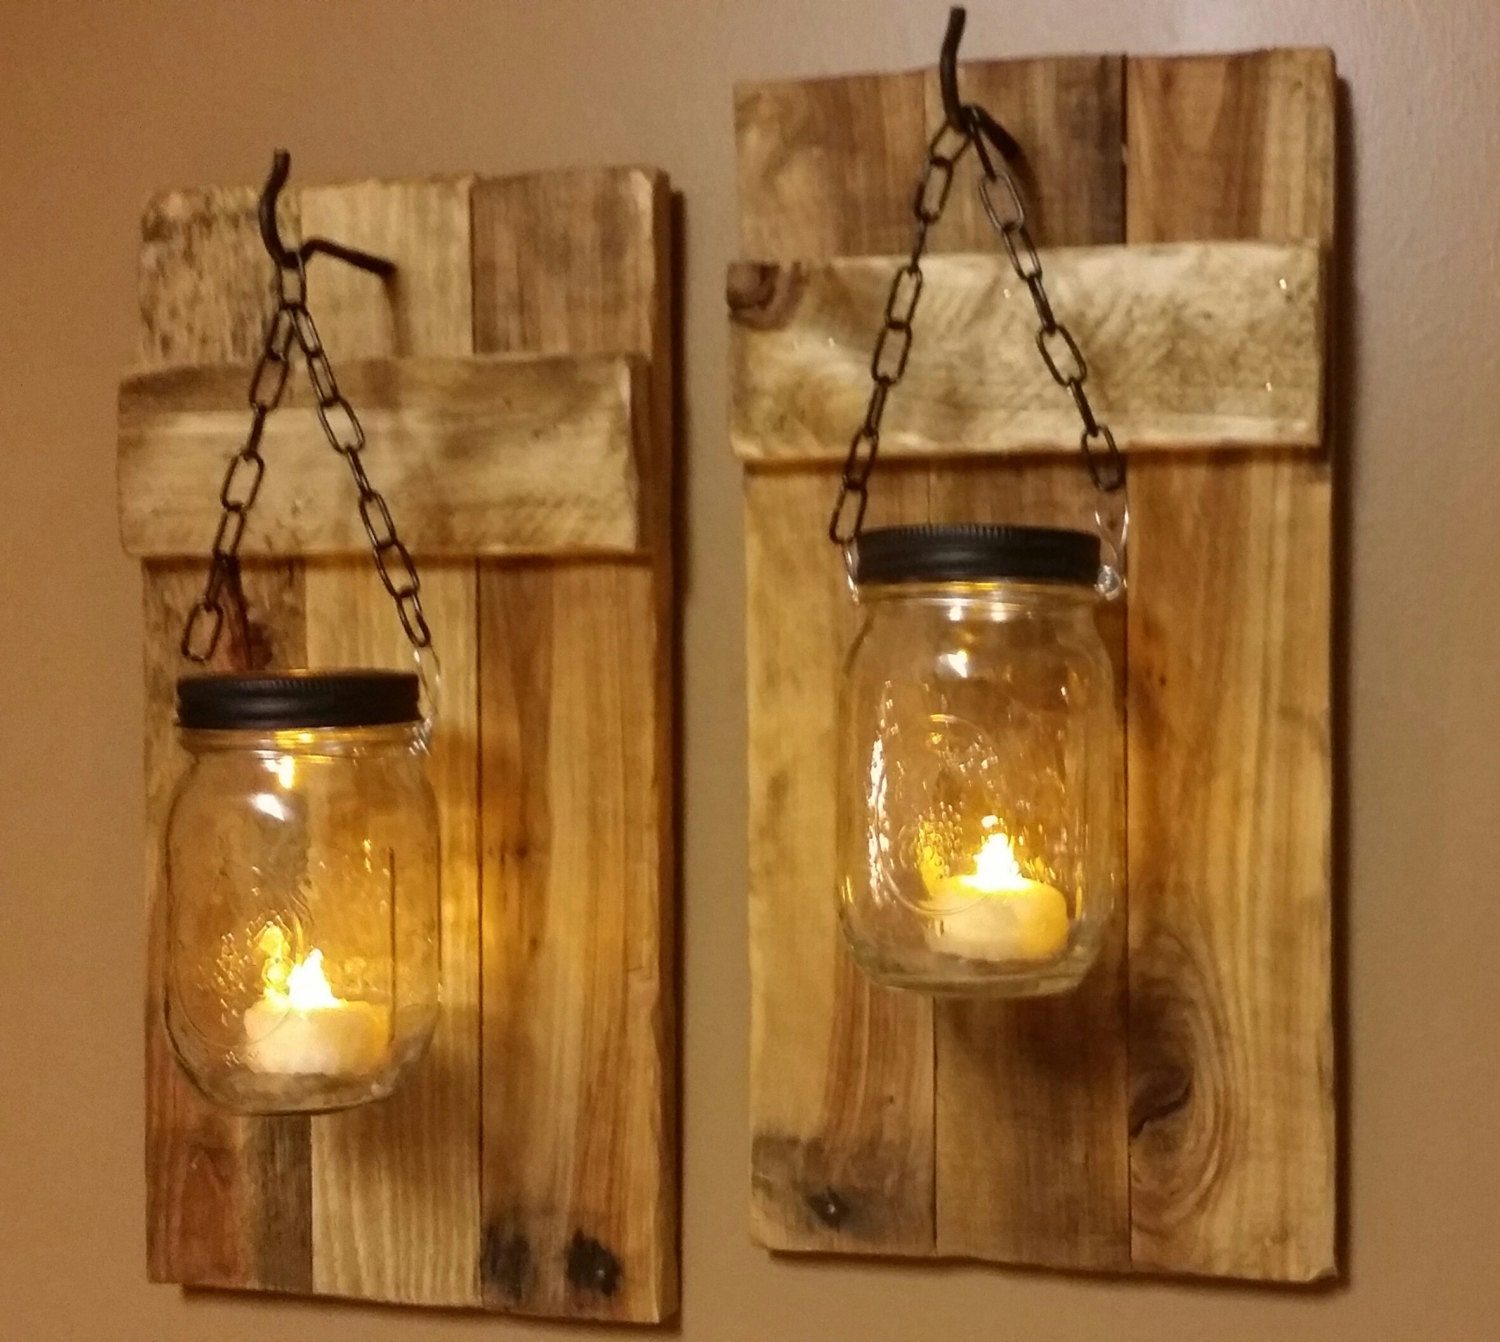 mason jar candle holder rustic decor set of 2 rustic. Black Bedroom Furniture Sets. Home Design Ideas